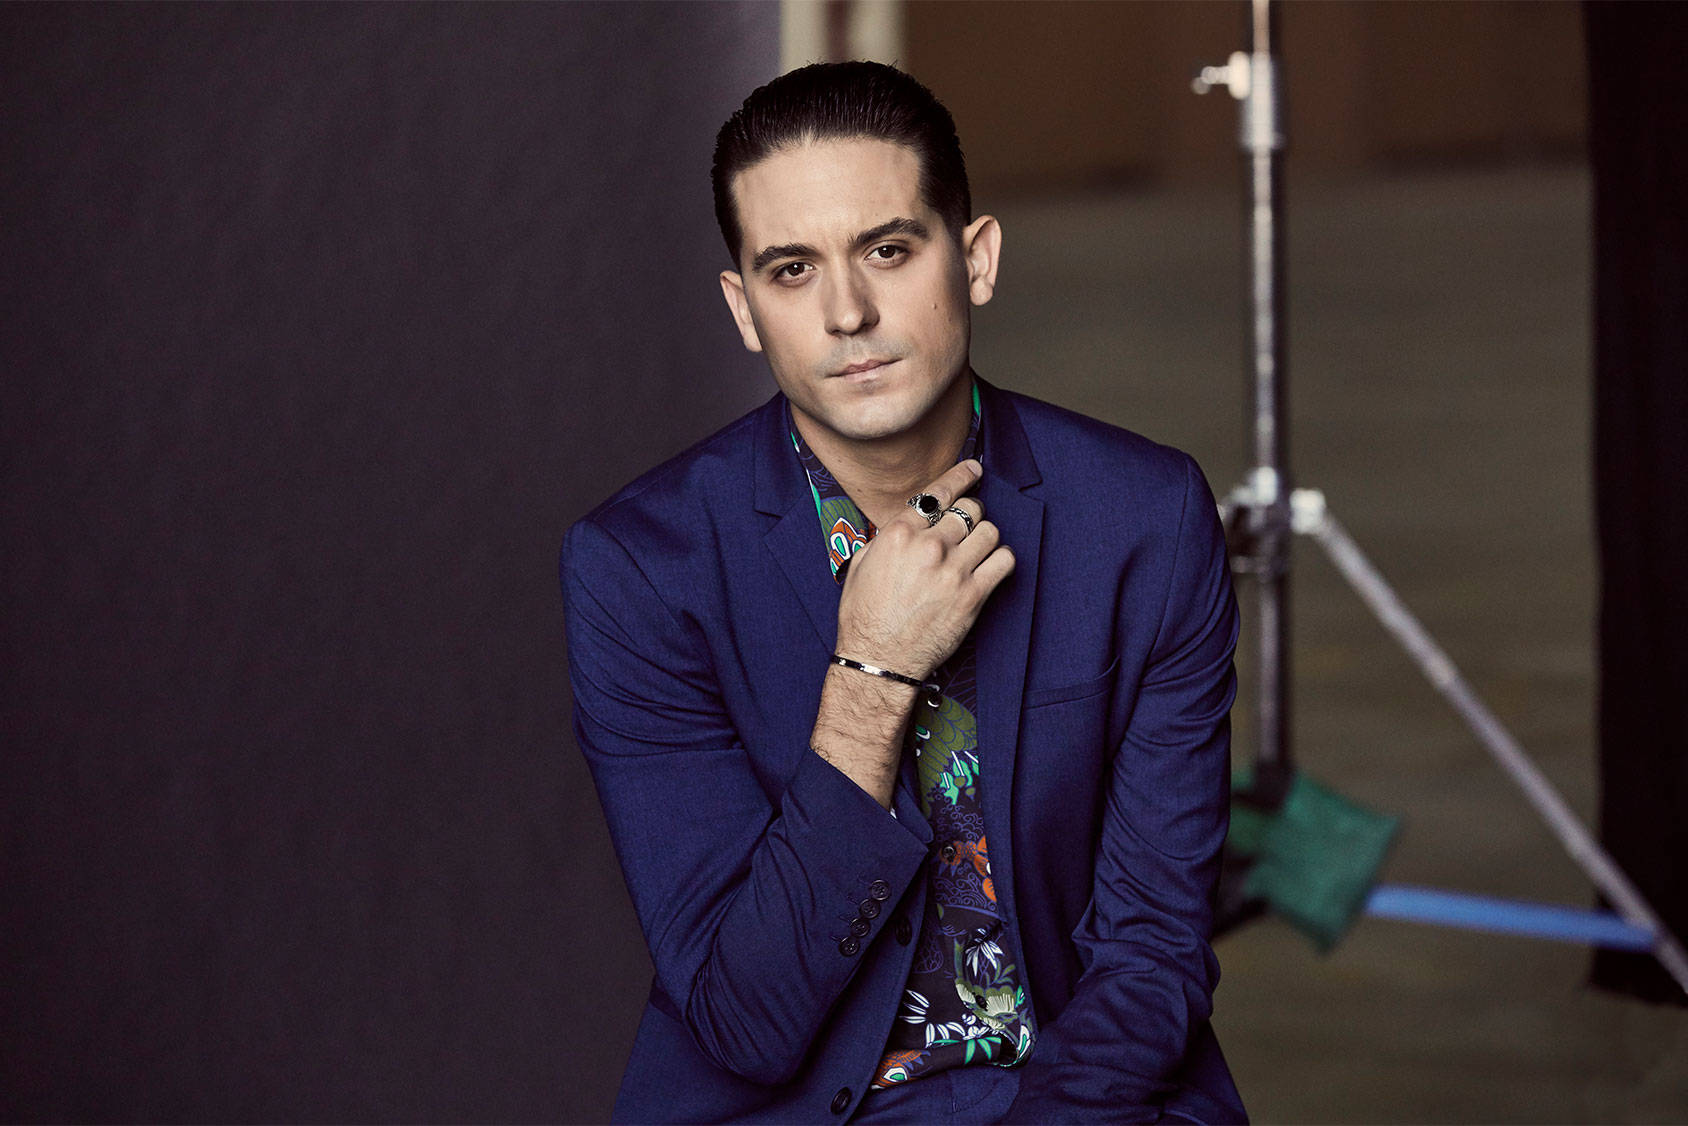 G-Eazy designs collection with H&M